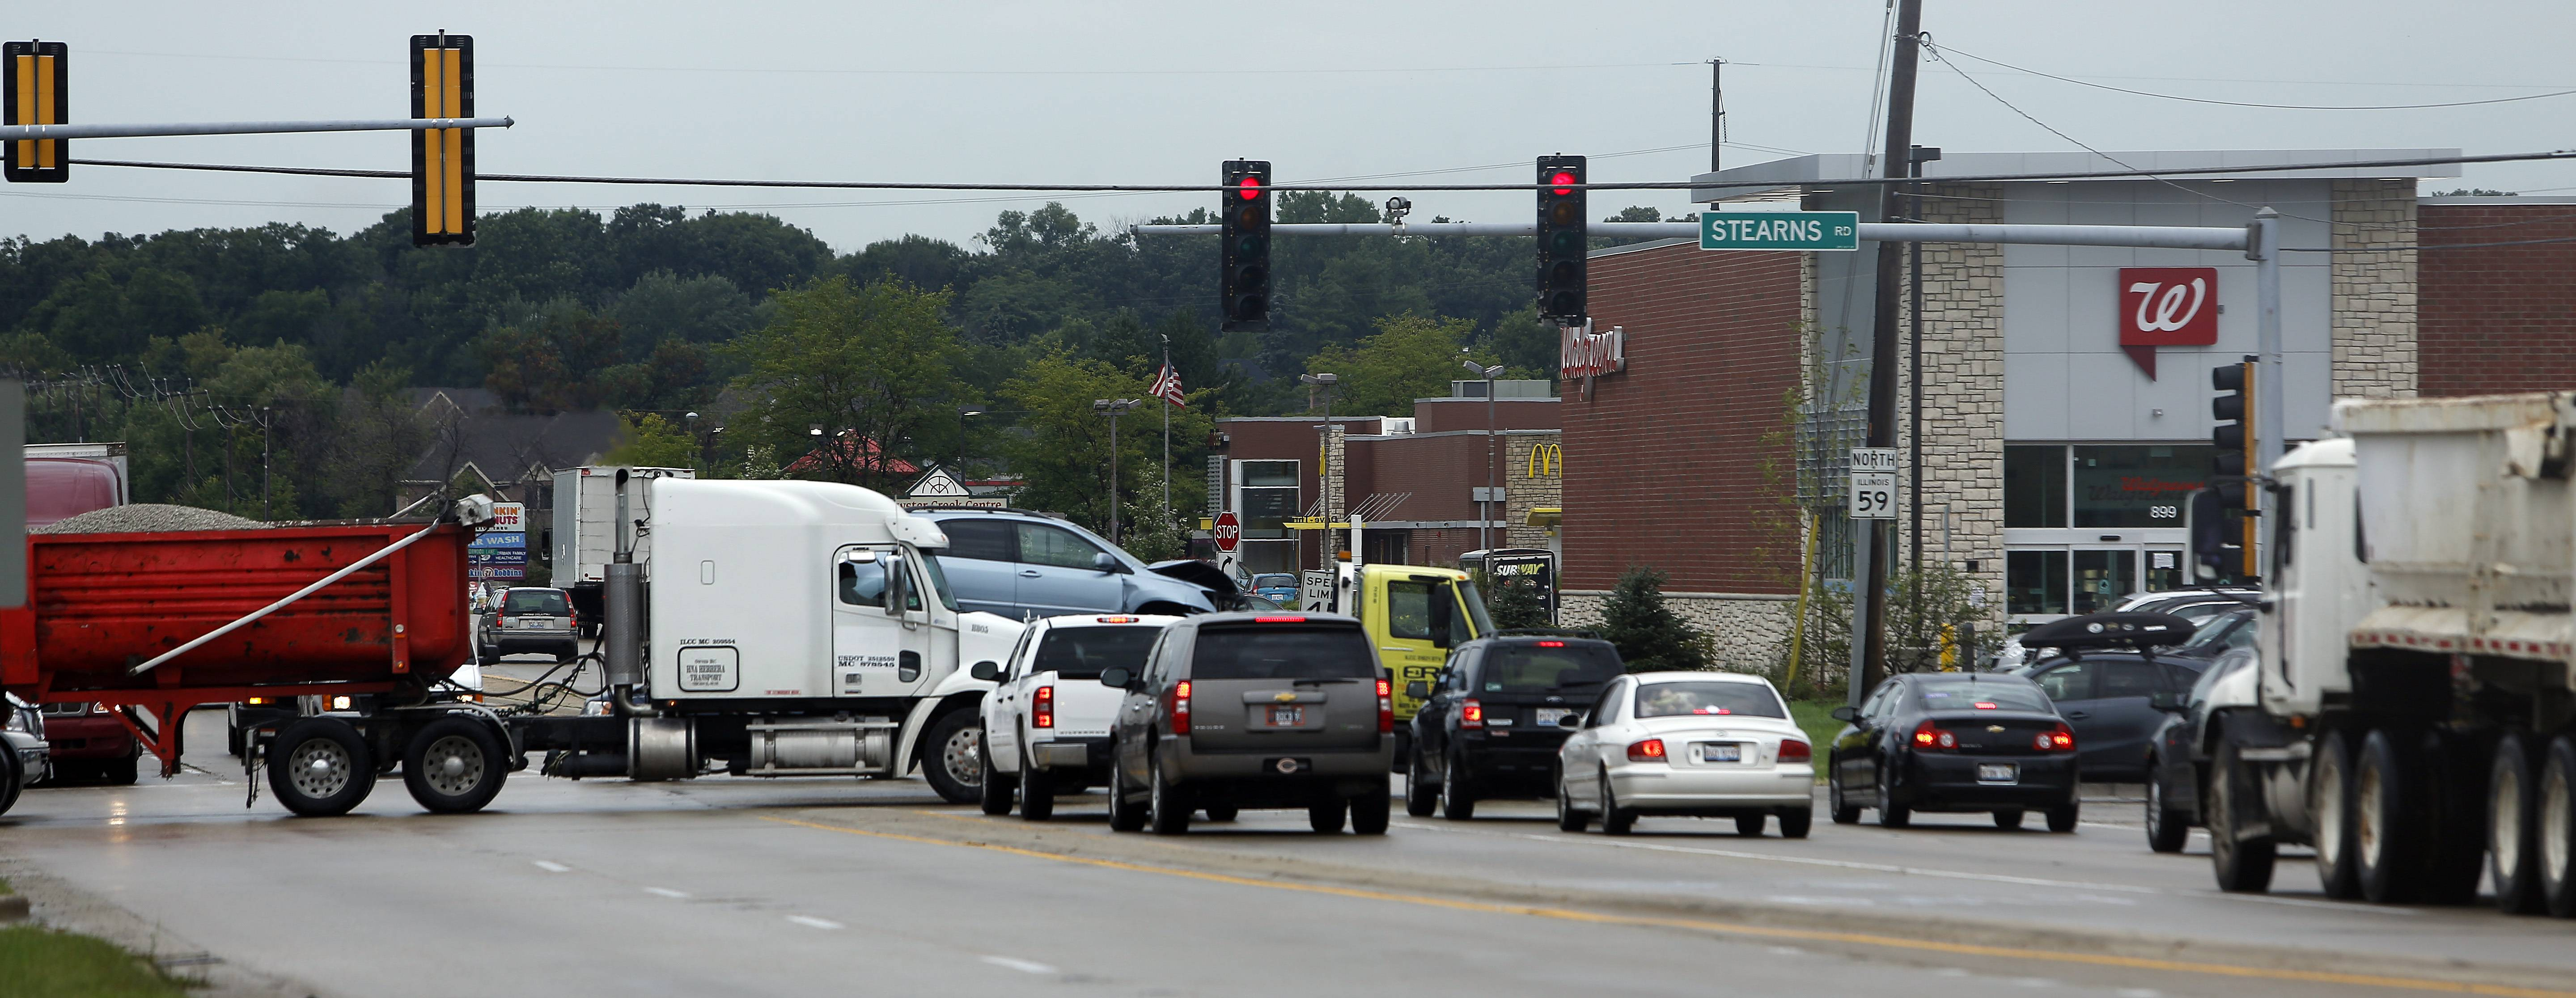 IDOT is planning to widen the intersection of Route 59 and Stearns Road in Bartlett to ease congestion.